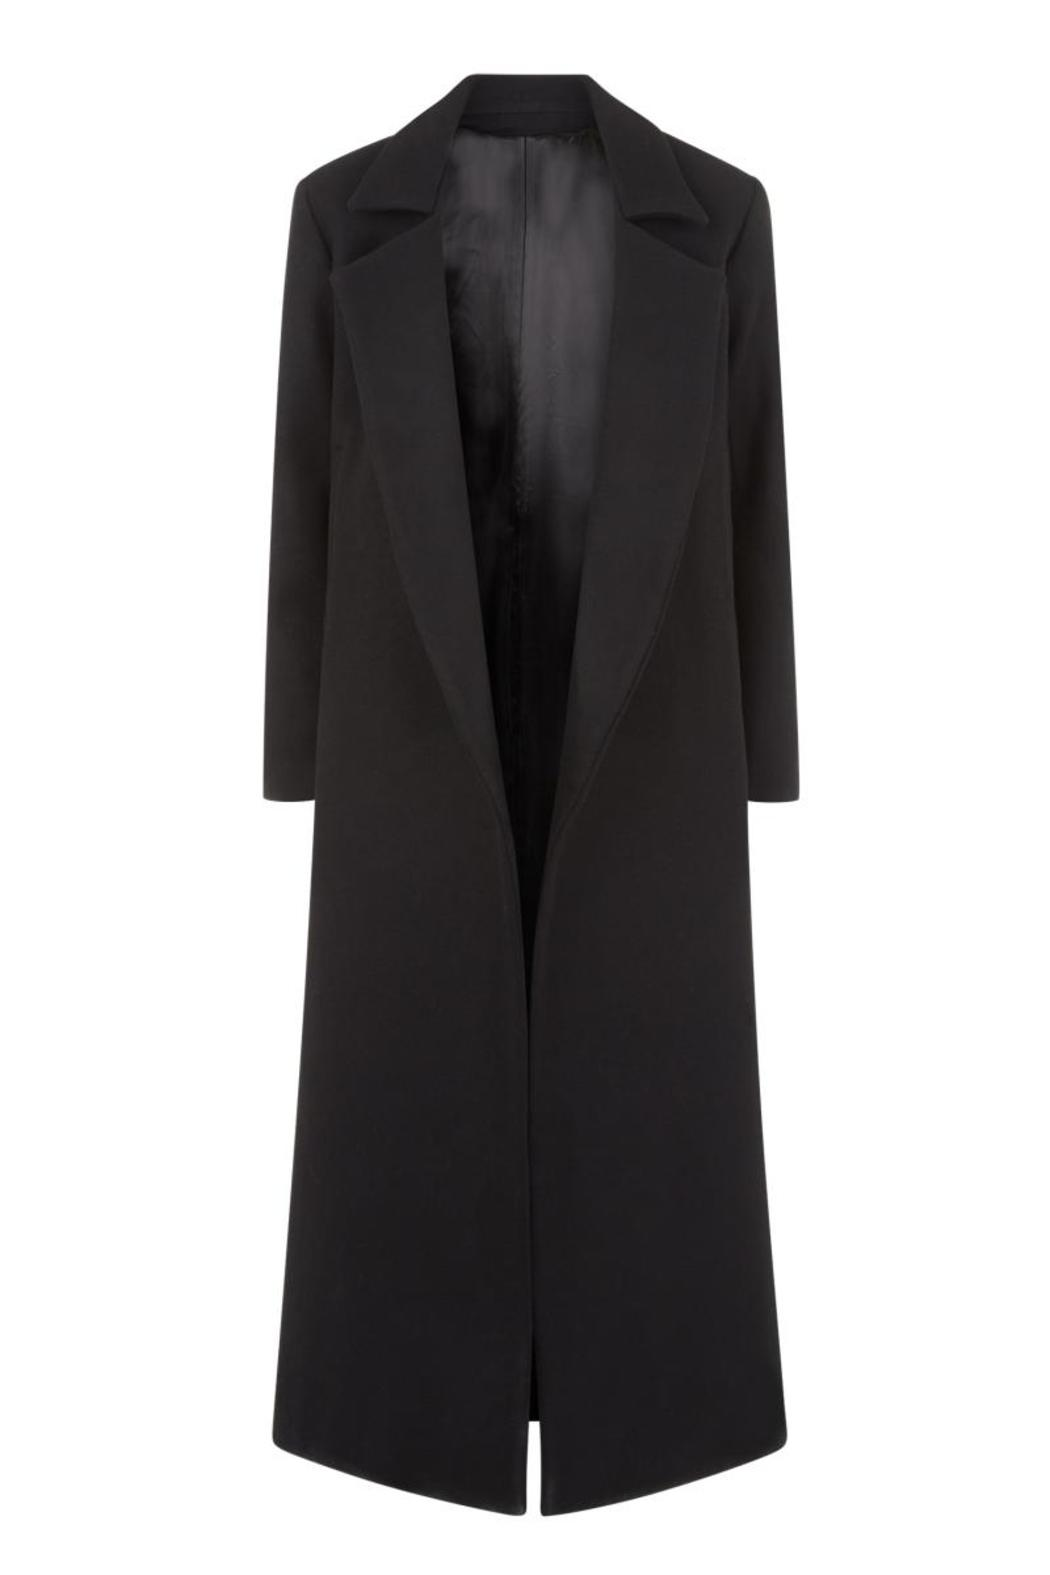 Charlie May Wool Duster Coat - Side Cropped Image